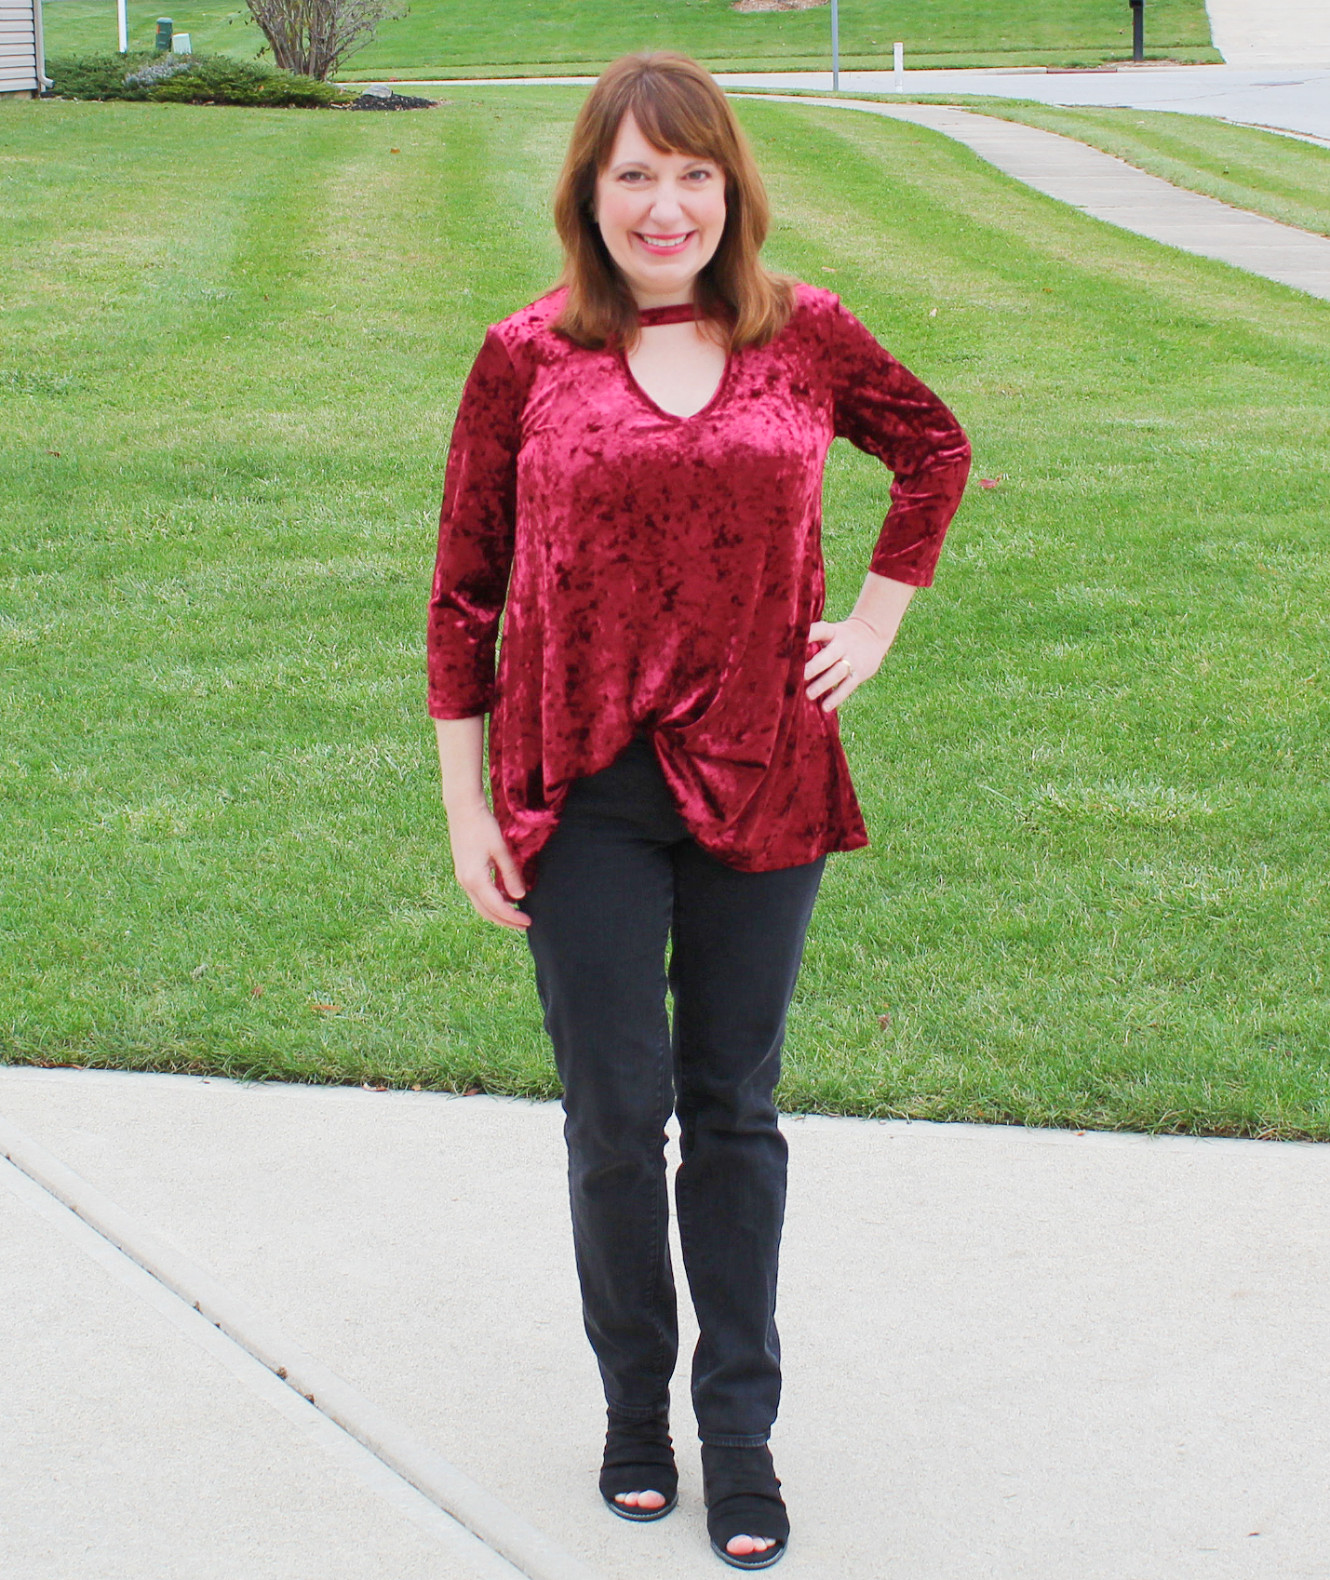 Burgundy Velvet Top And Black Jeans